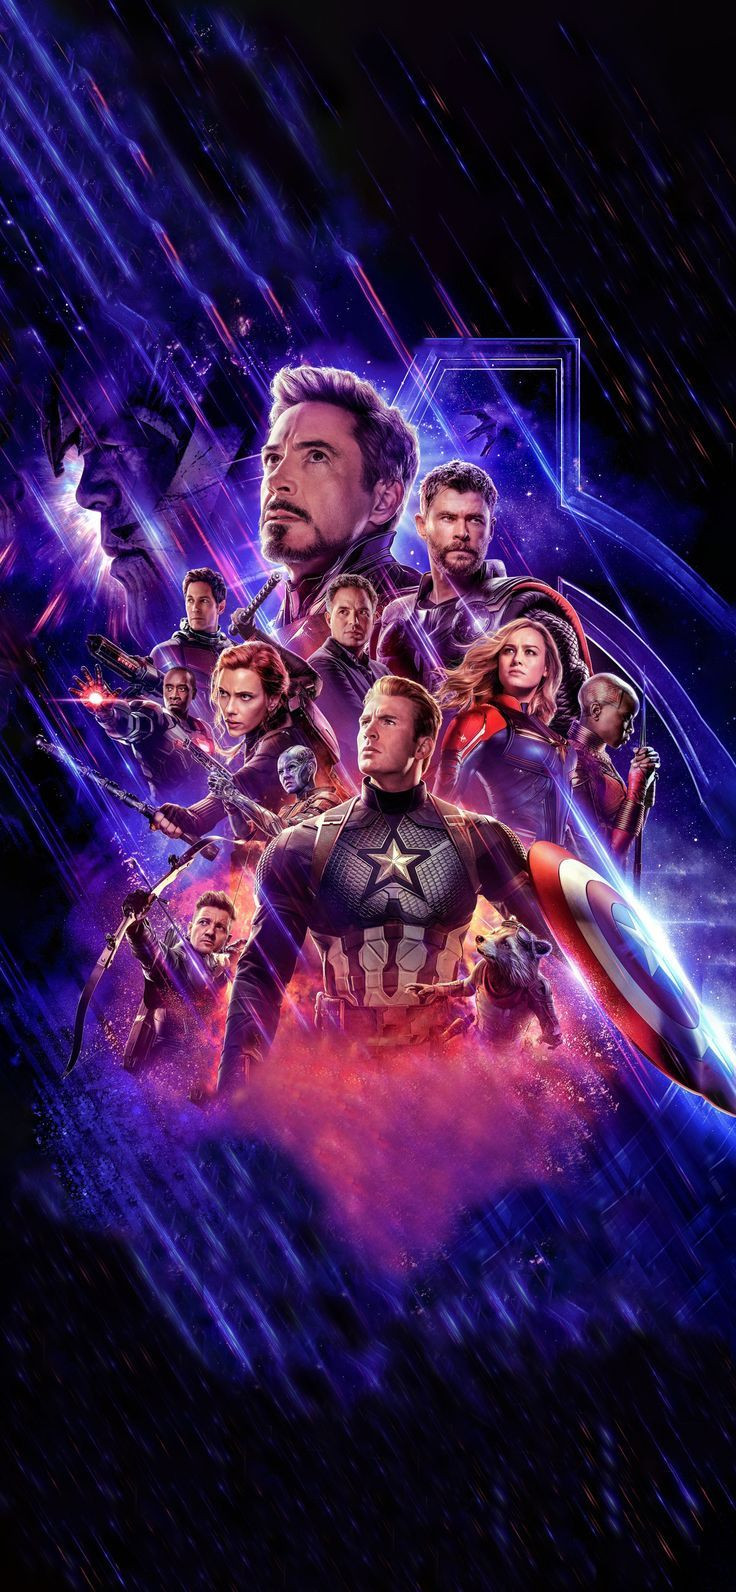 Avengers Endgame Textless Phone Wallpaper